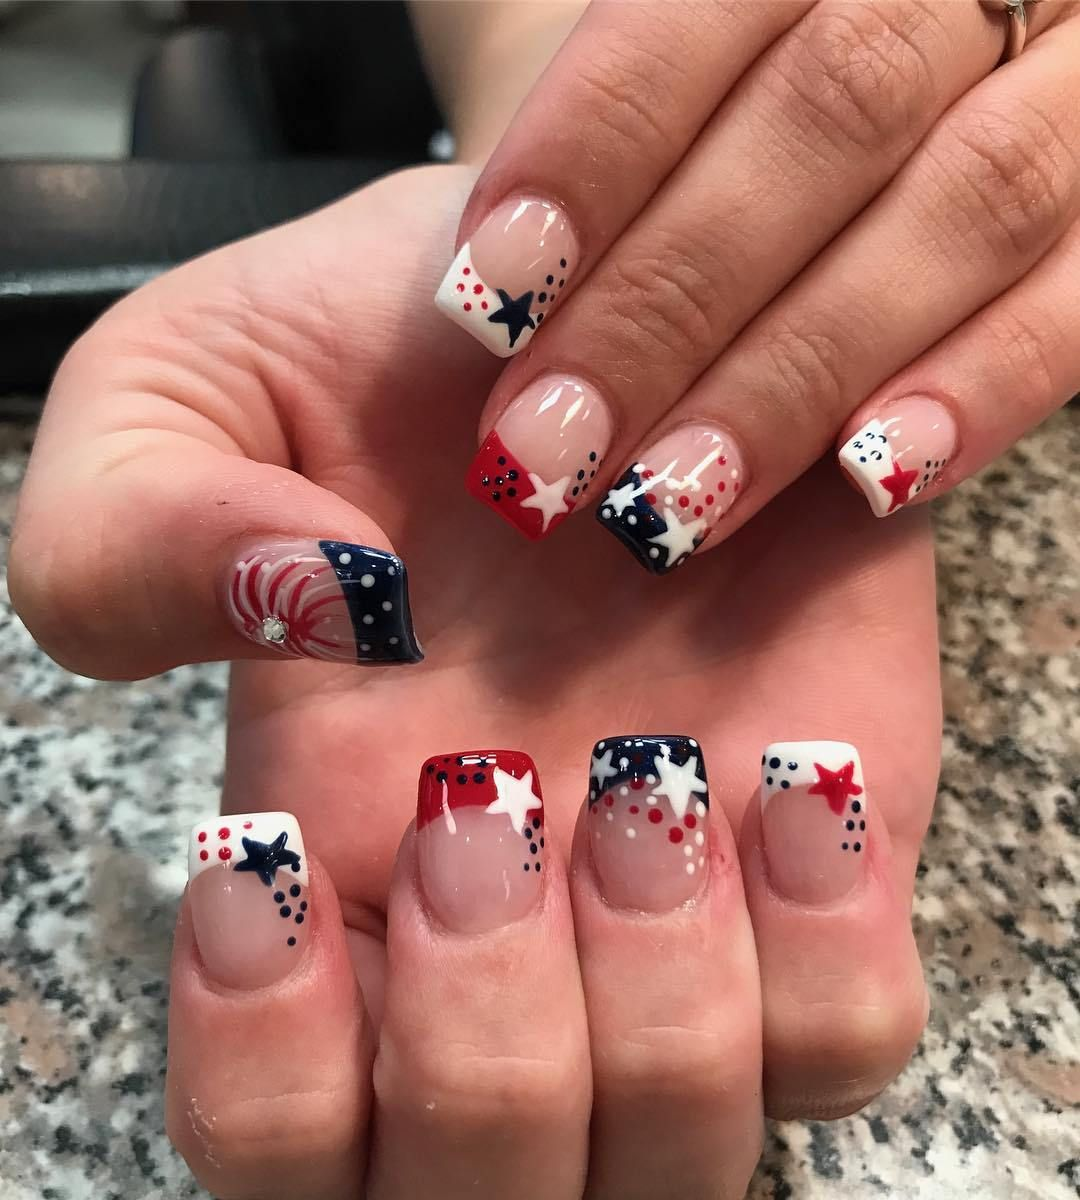 25 Nail Art Ideas For The 4th Of July Patriotic Nails Design 4th Of July Nails Patriotic Nails